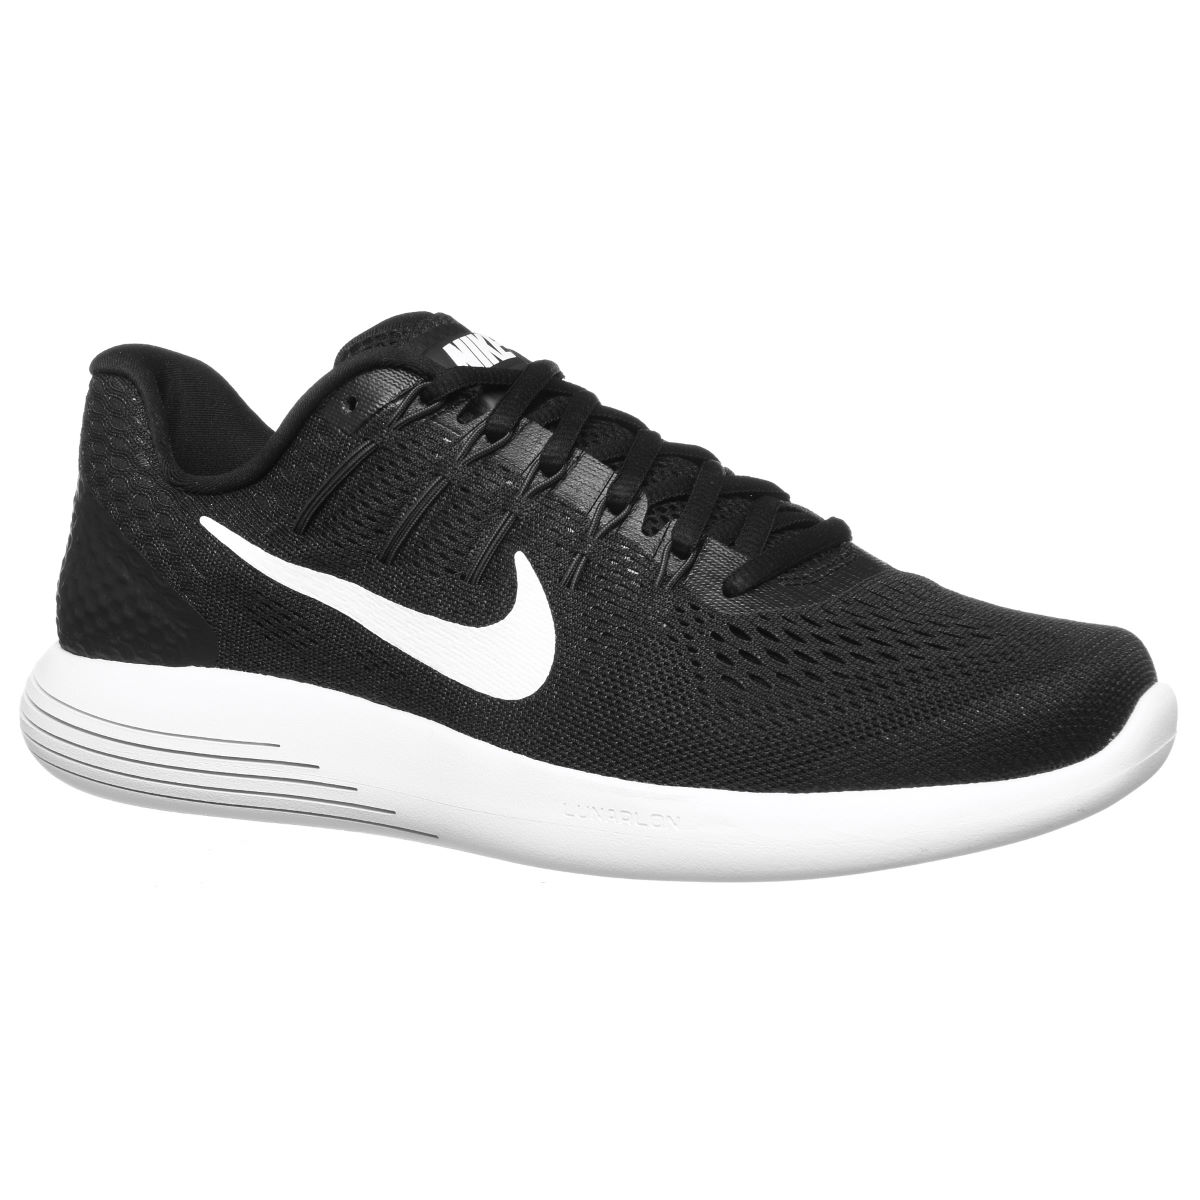 Nike Lunarglide 8 Shoes - UK 11 Black/White | Stability Running Shoes